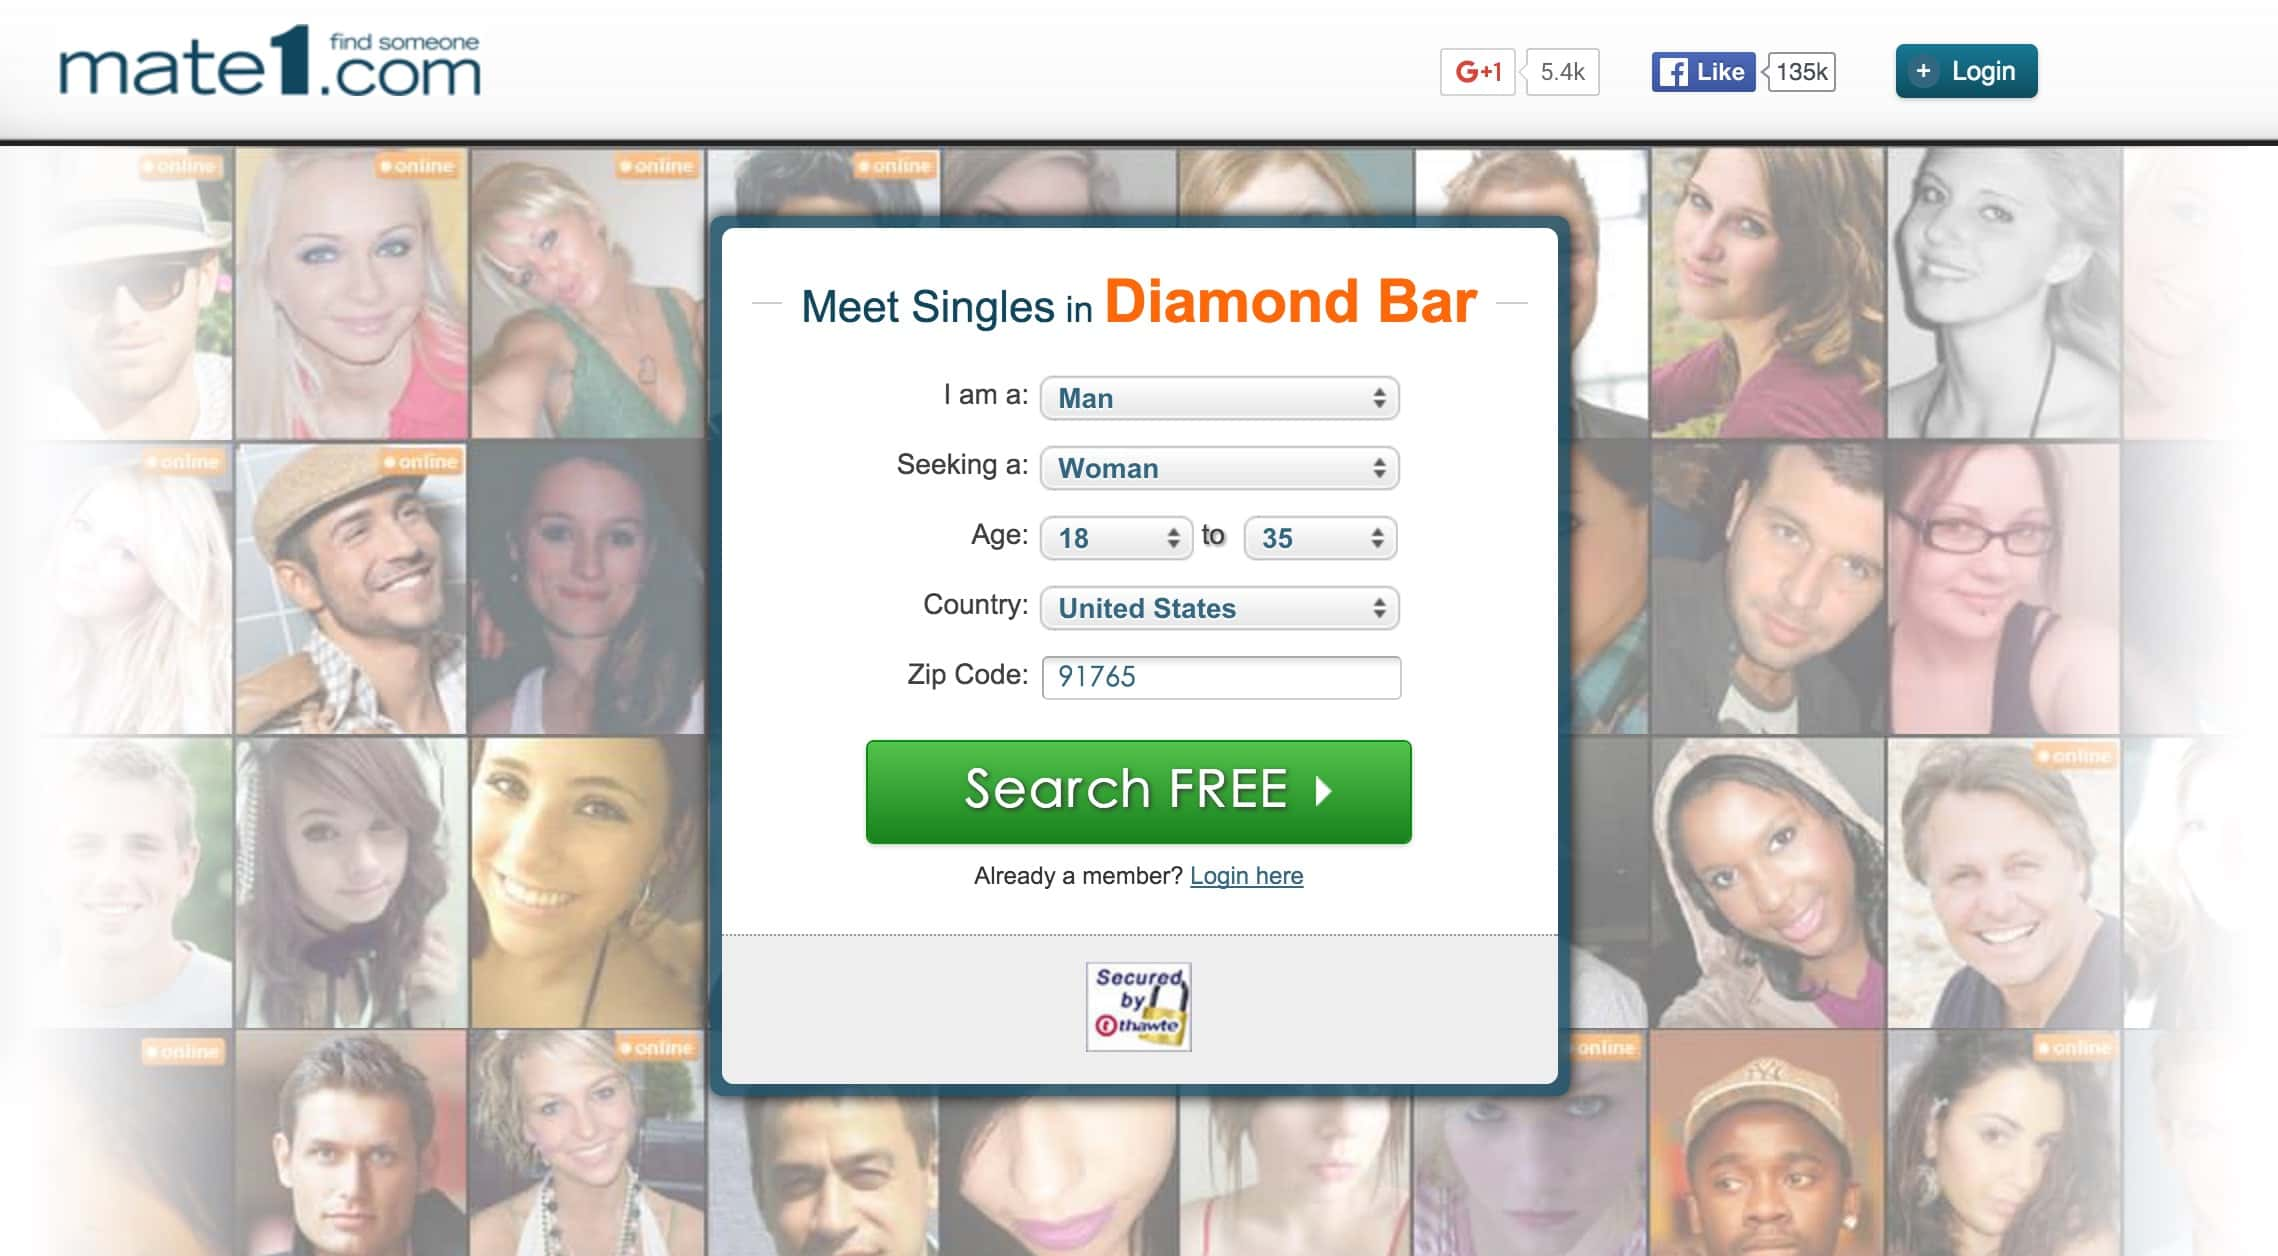 reviews of free online dating sites Comparison of online dating websites this is a partial yes/no searching and viewing partial profiles is included with free account like most dating sites.